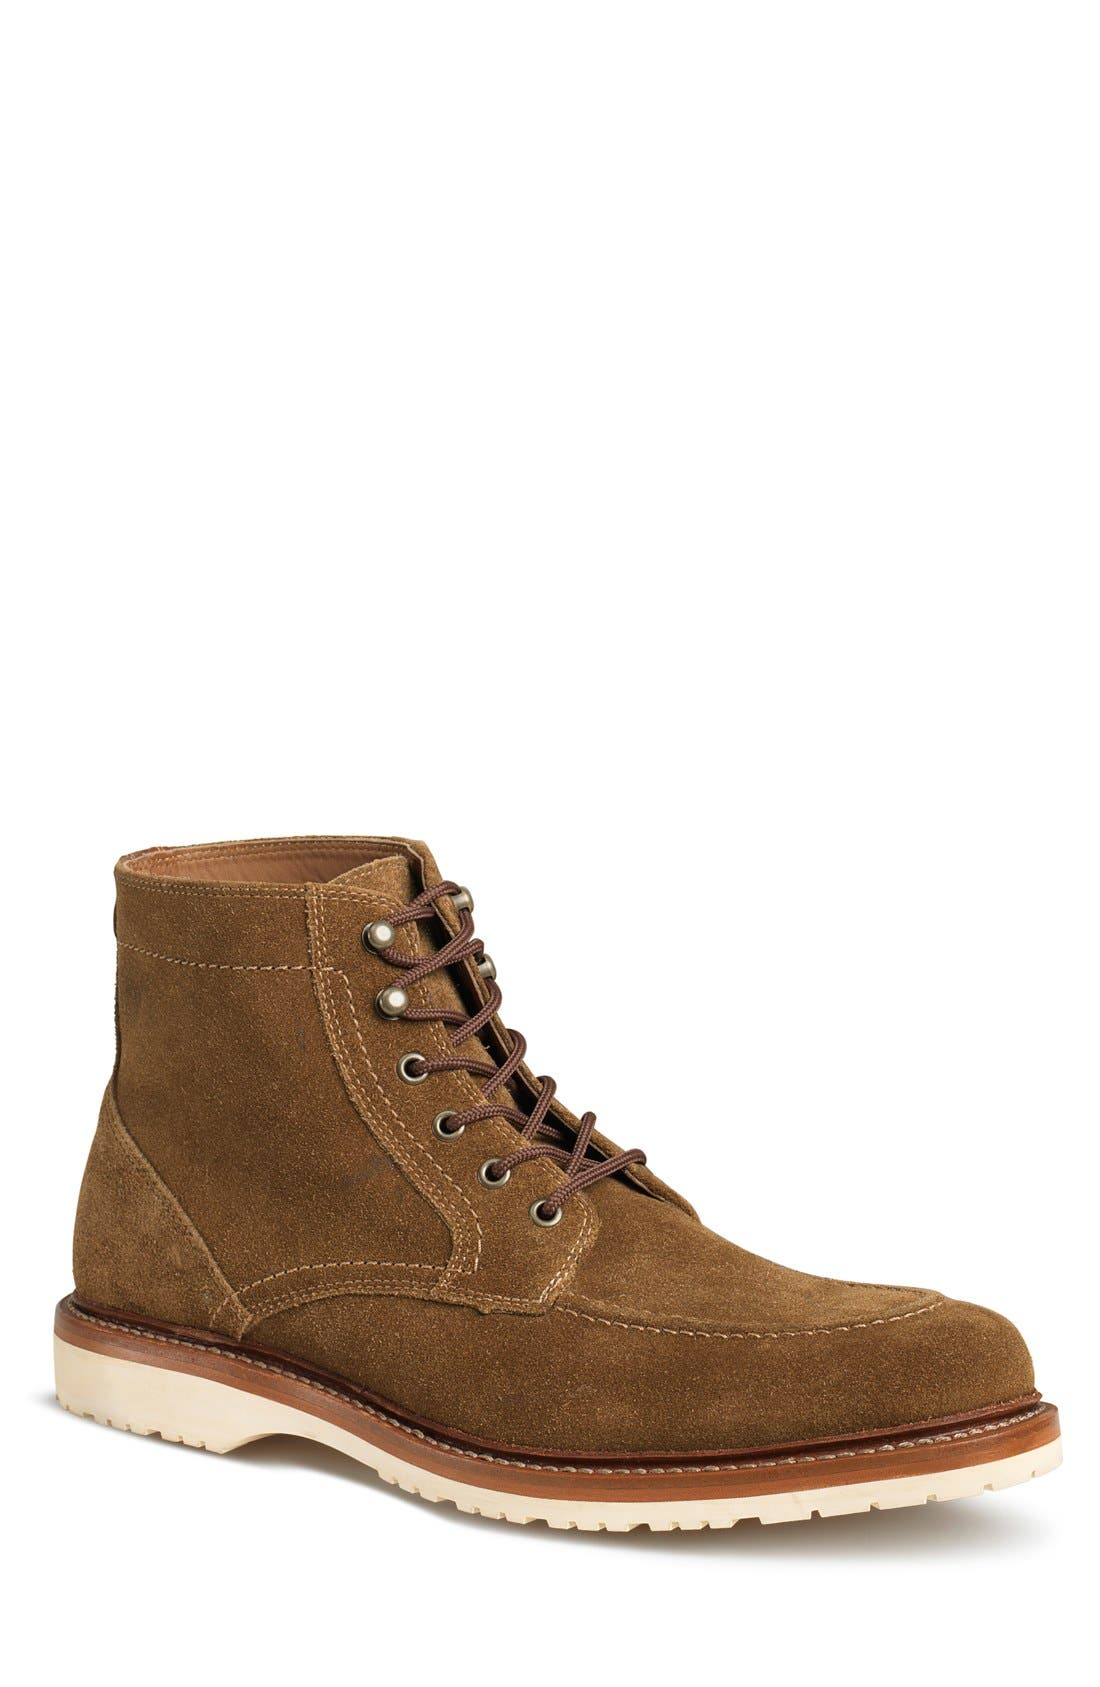 'Andrew Mid' Apron Toe Boot,                         Main,                         color, Whiskey